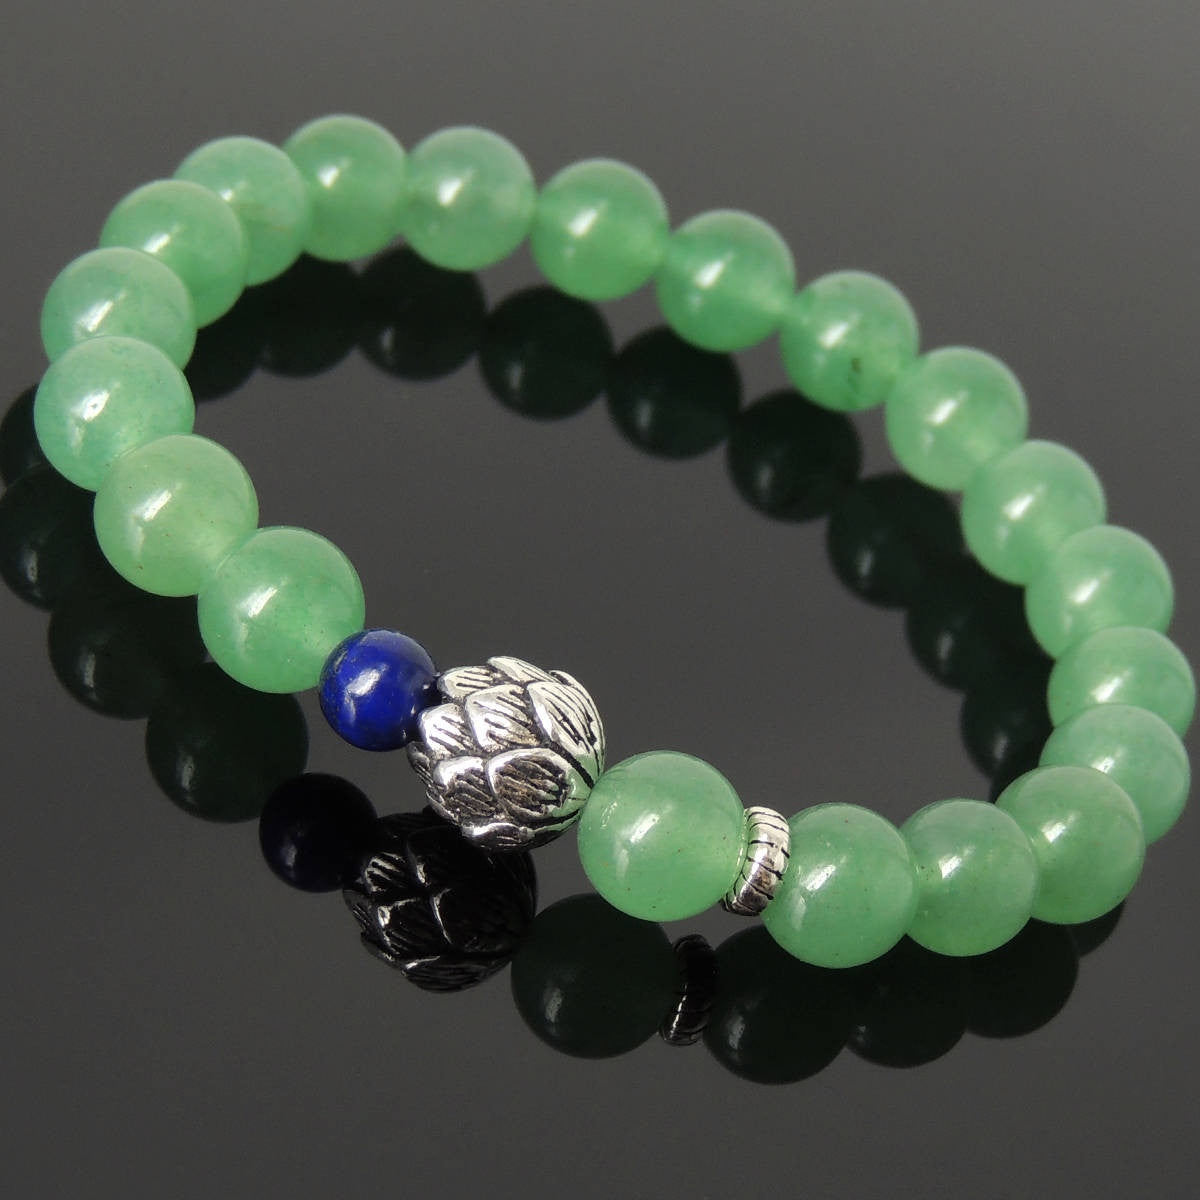 Natural Aventurine Quartz & Lapis Lazuli Gemstone Bracelet with S925 Sterling Silver Lotus Bead - Handmade by Gem & Silver BR1134